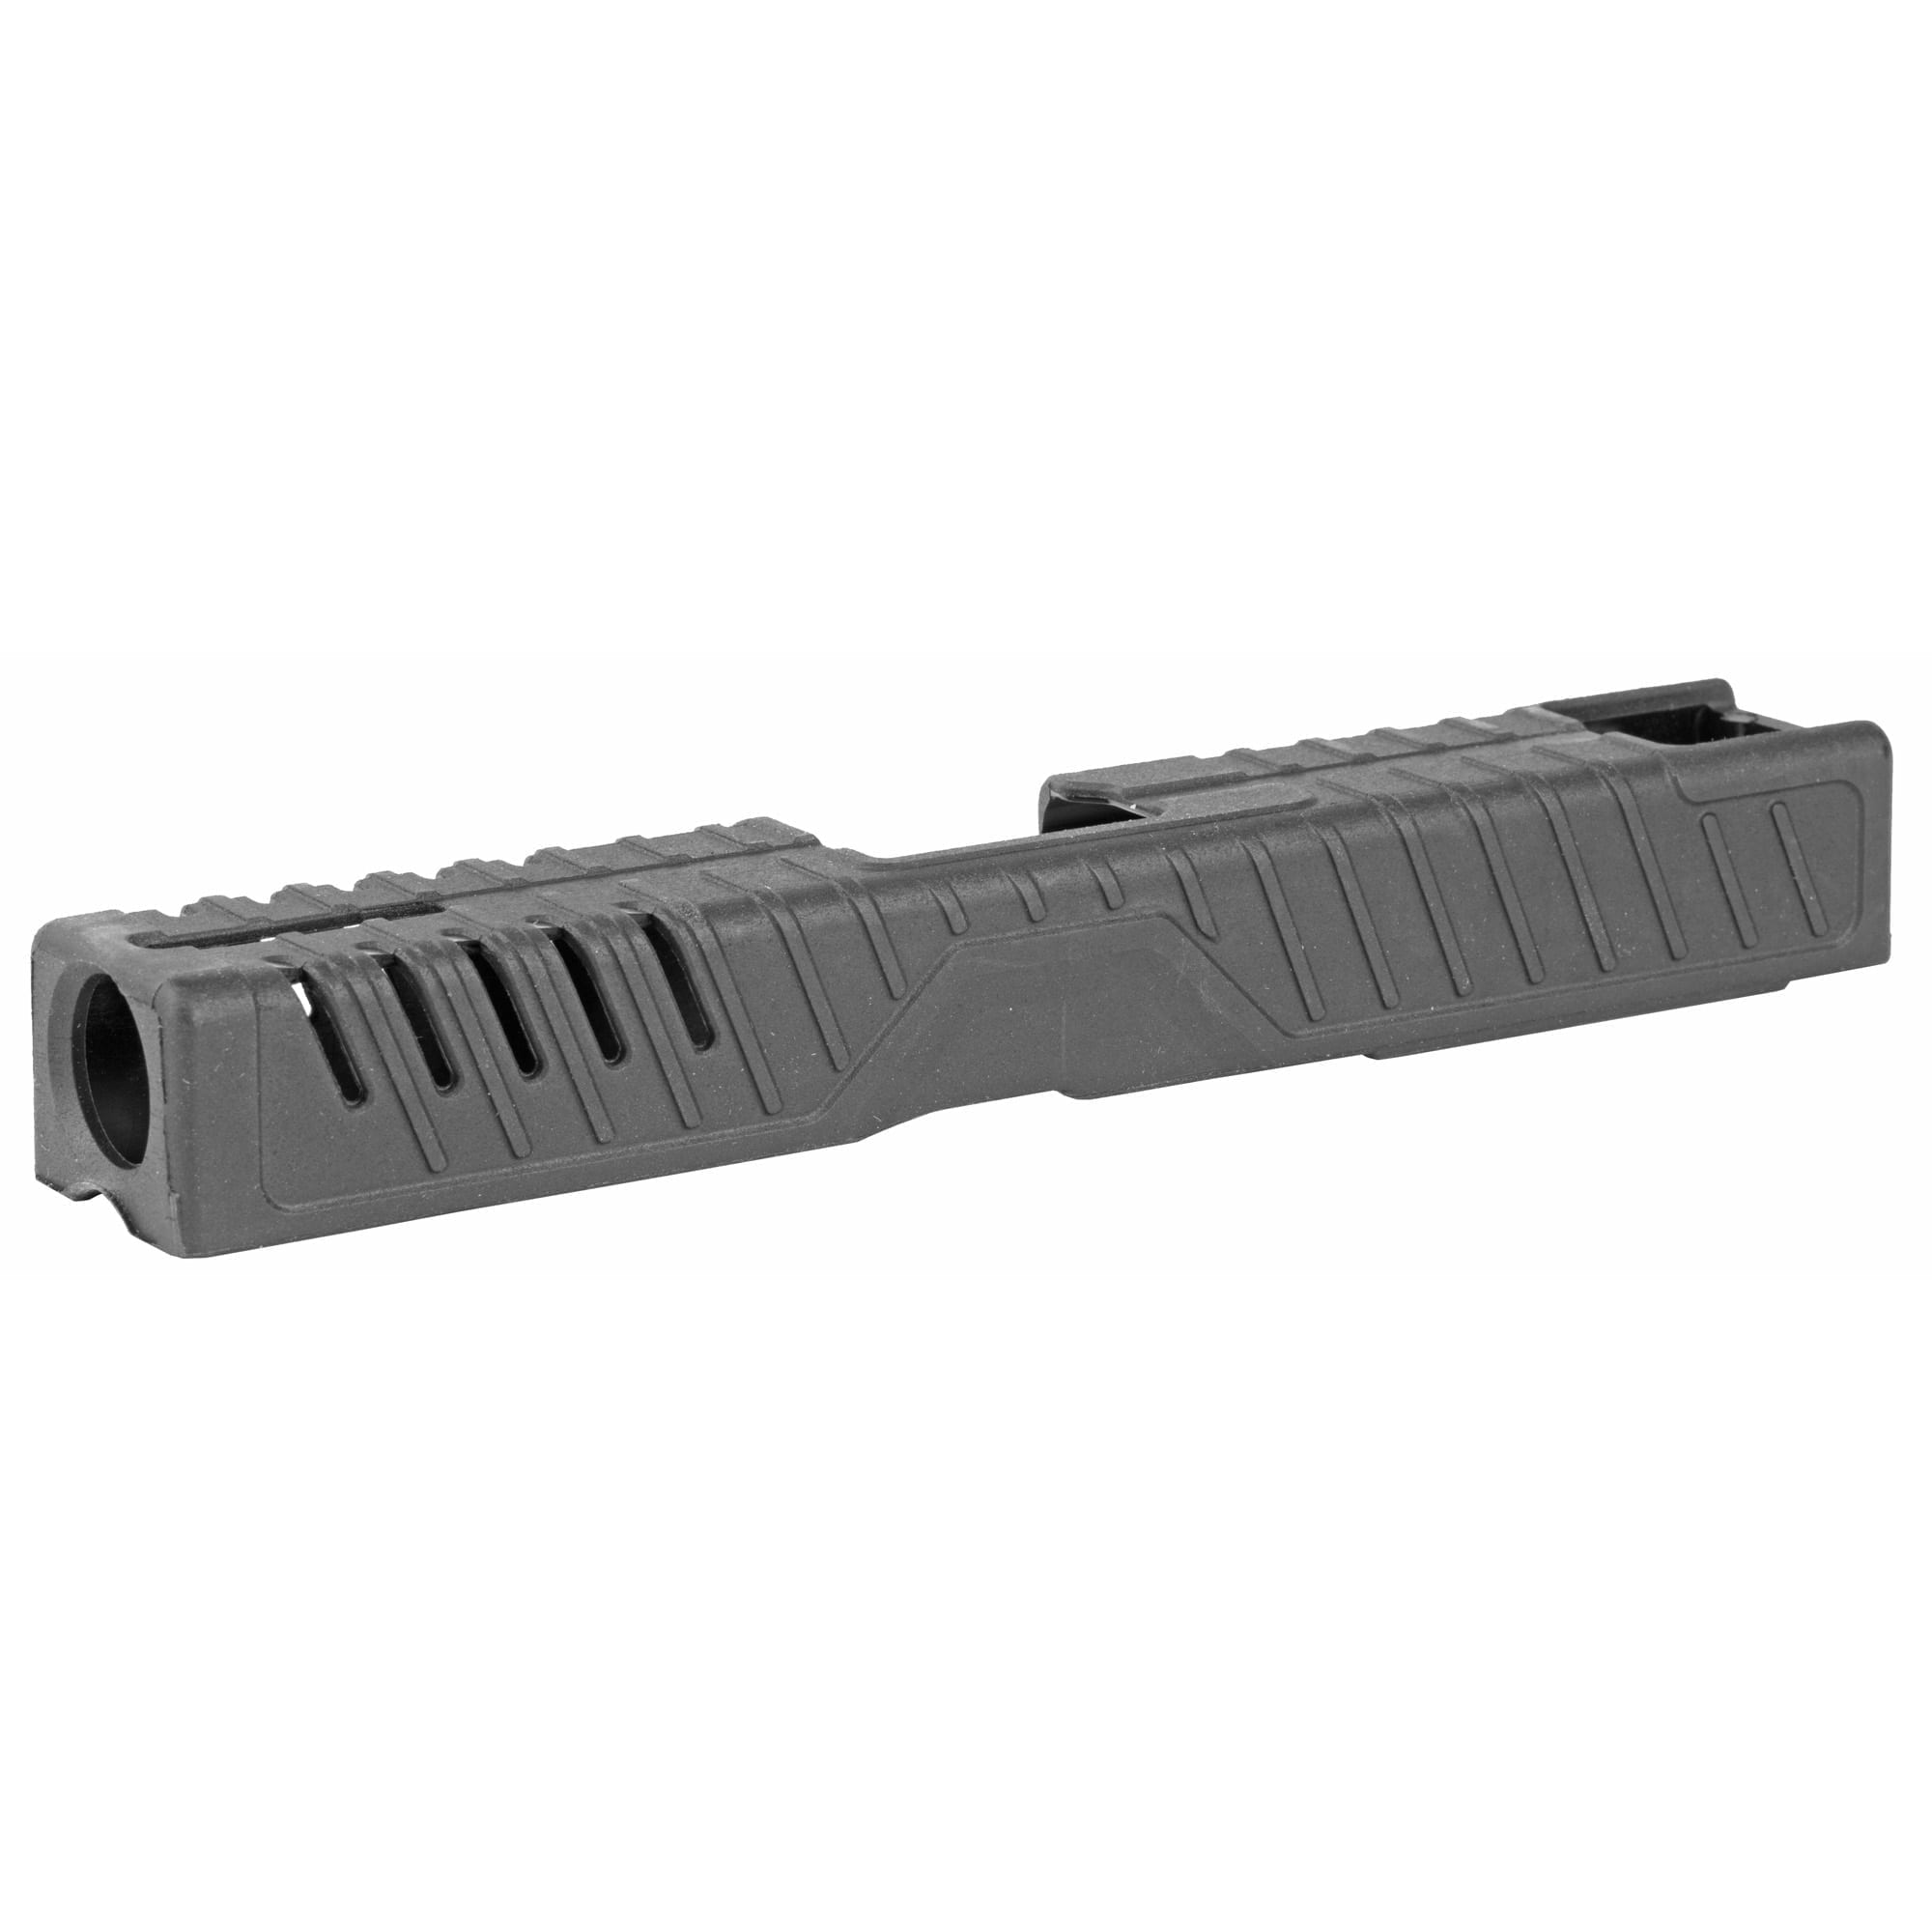 32,38 Polymer Slide Cover FAB Tactic-Skin 19 -S Red Color For Glock 19 25 23